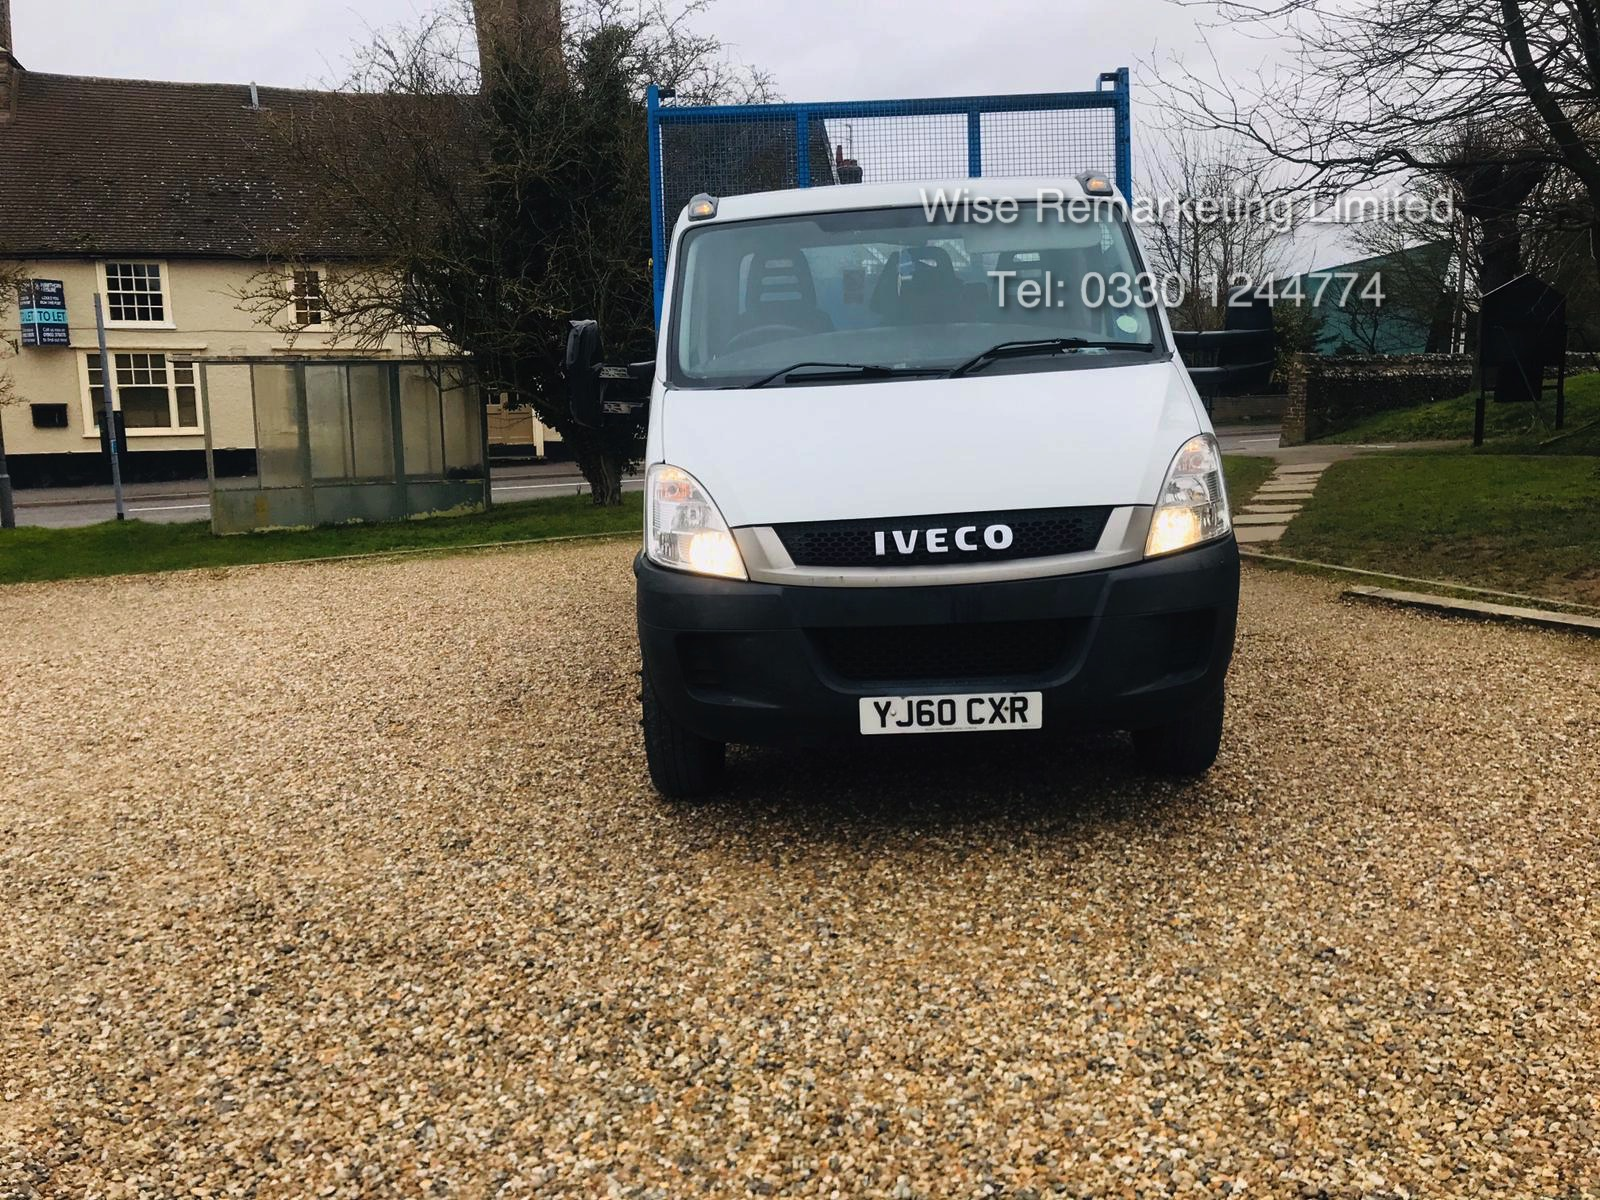 Iveco Daily 3.0 TD 60C18 Tipper (Twin Wheeler) - 6 Speed - 2011 Model - 1 Keeper SAVE 20% NO VAT - Image 4 of 18